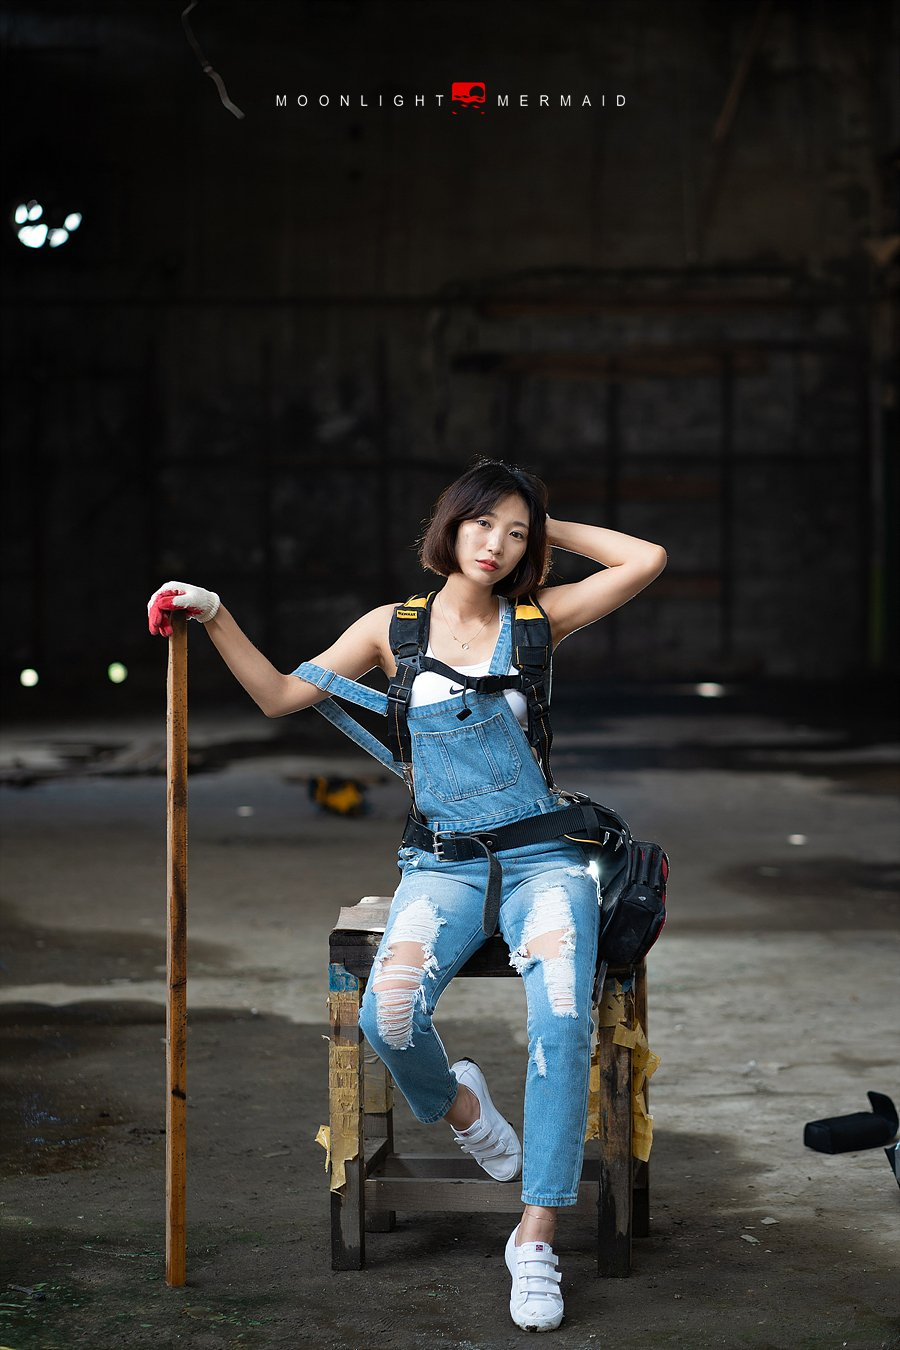 #sexy #girl #woman #beauty #cute #light #night #red  #potrait #construction #female #factory #a9 #sony #tools, moonlight_mermaid